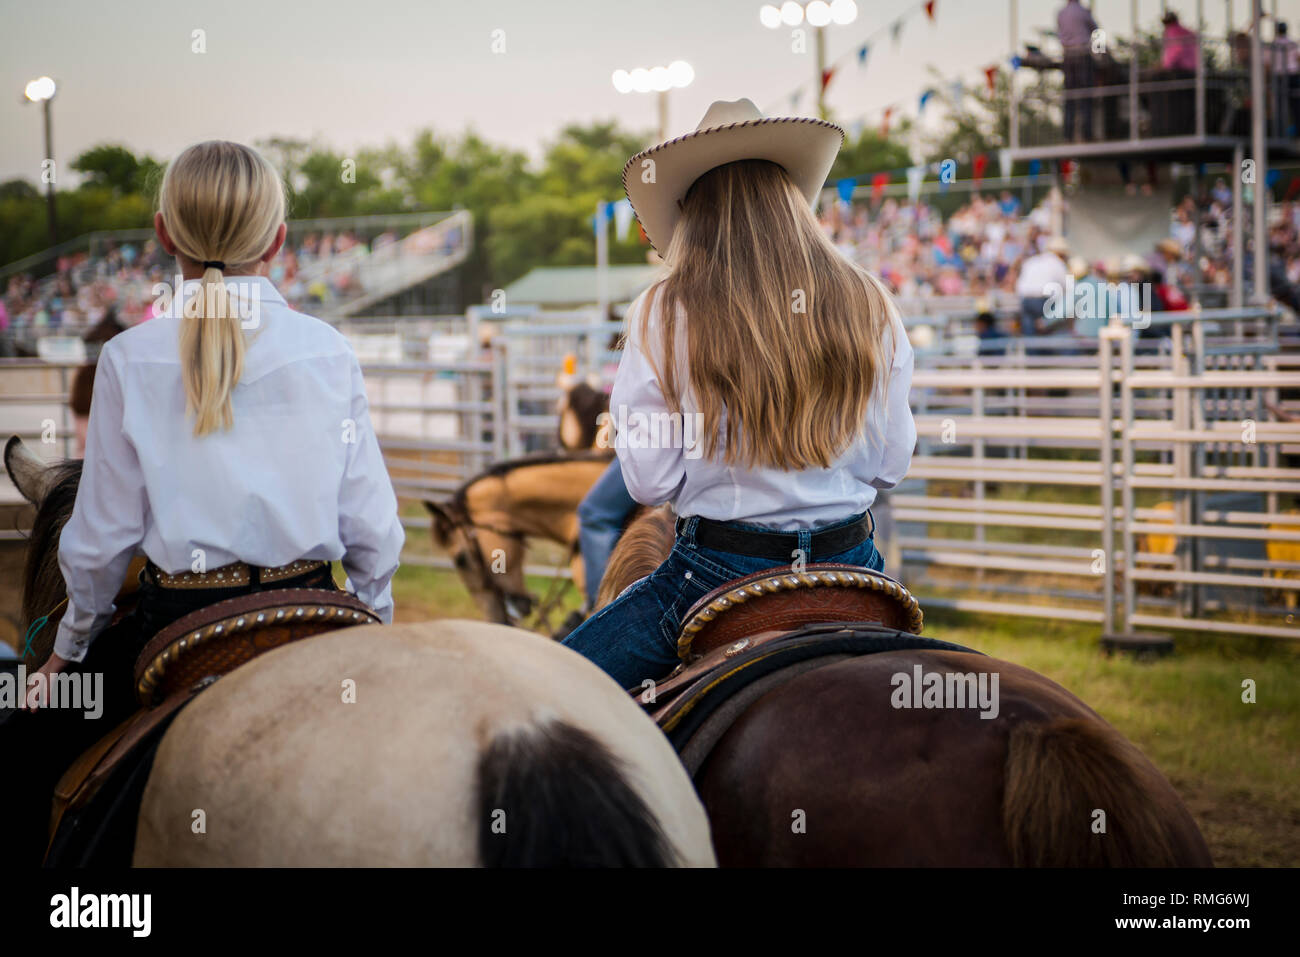 Horses And Cowgirls Stock Photos Amp Horses And Cowgirls